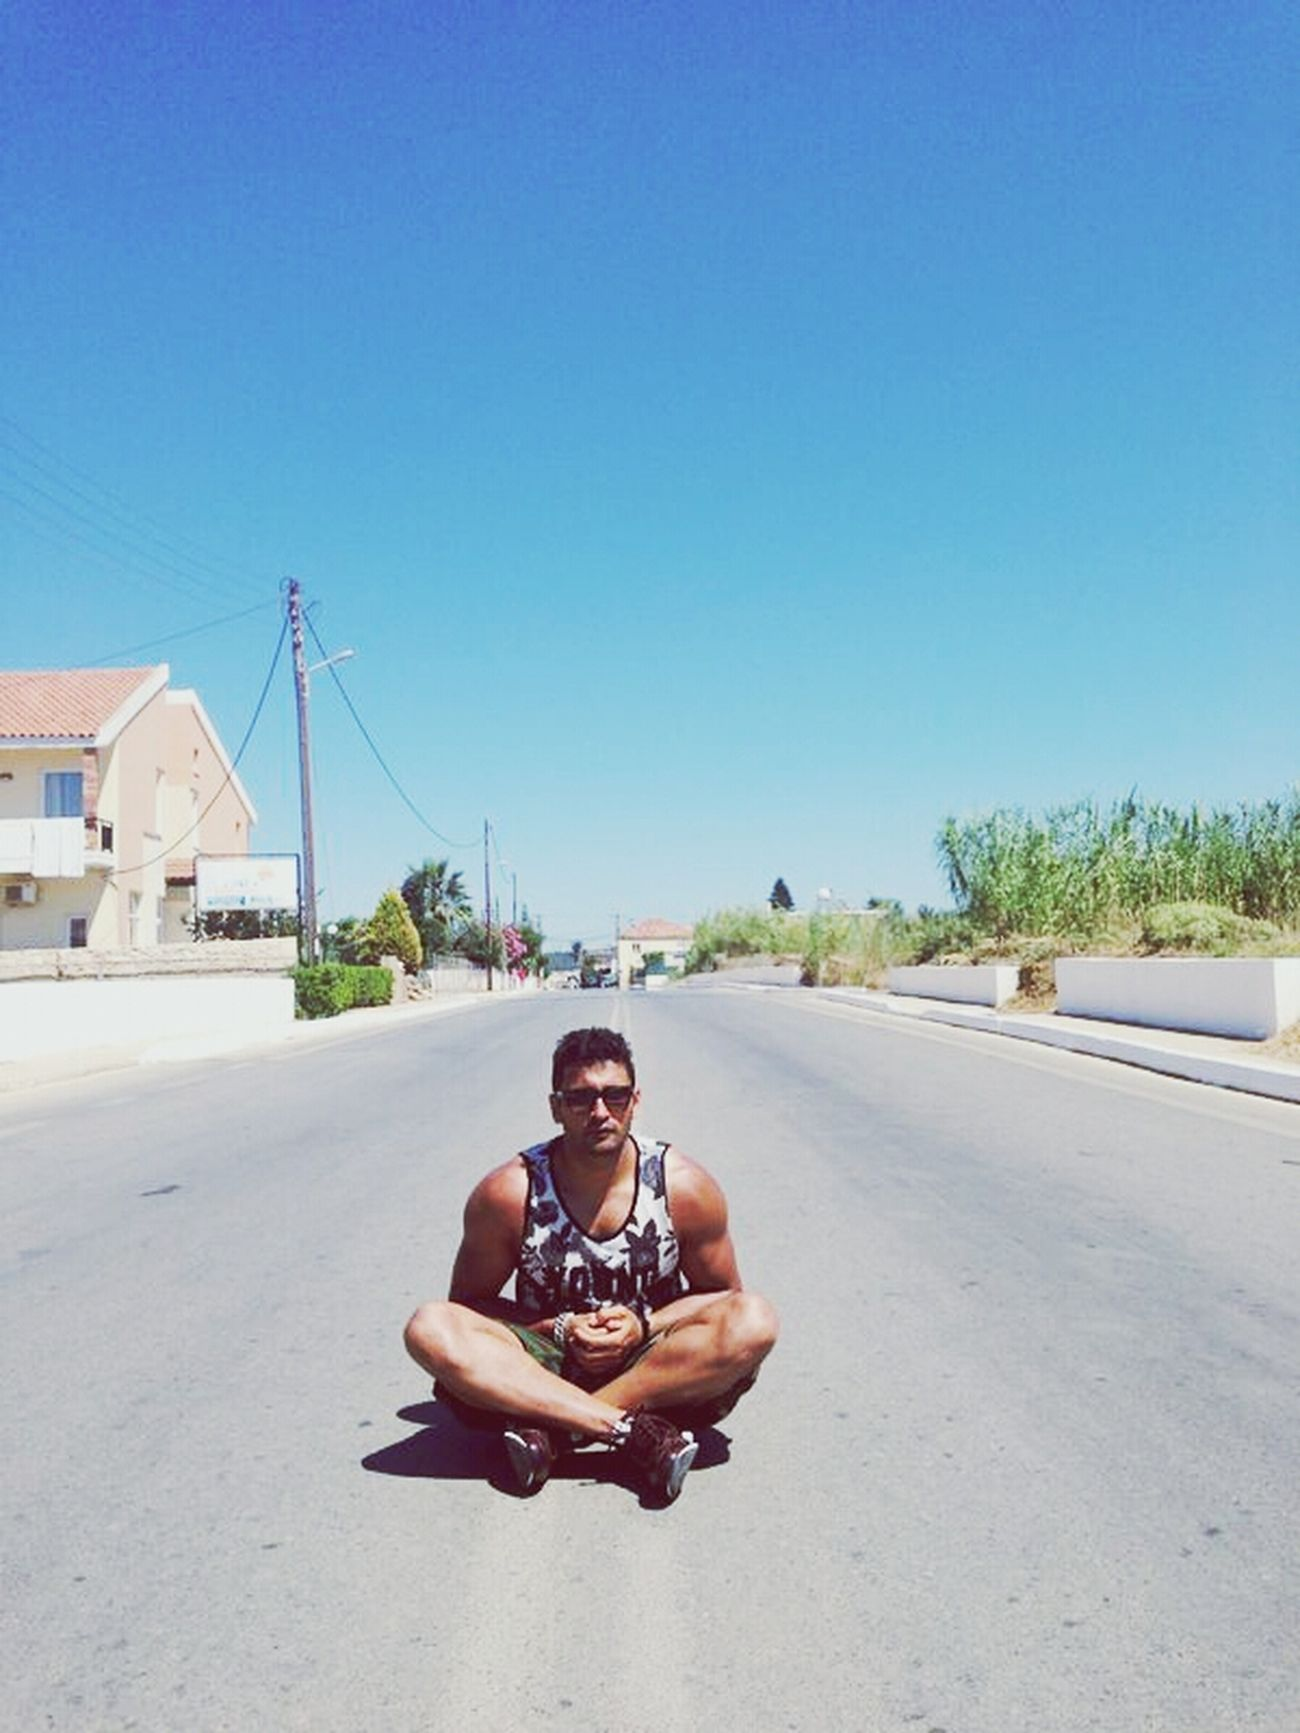 Man Handsome Boy Crete Greece